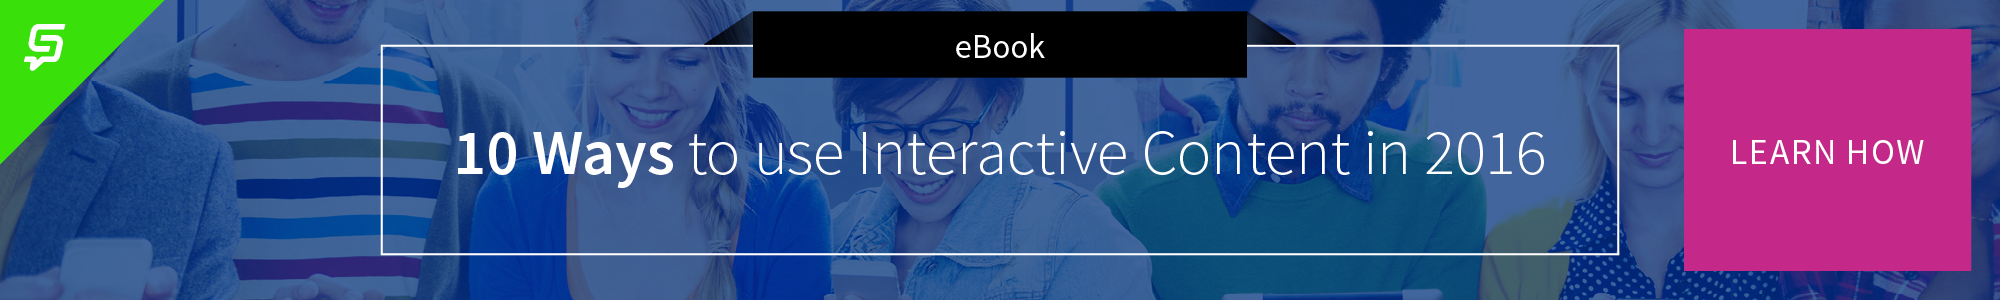 Learn-How--10-Ways-to-Use-Interactive-Content-in-2016